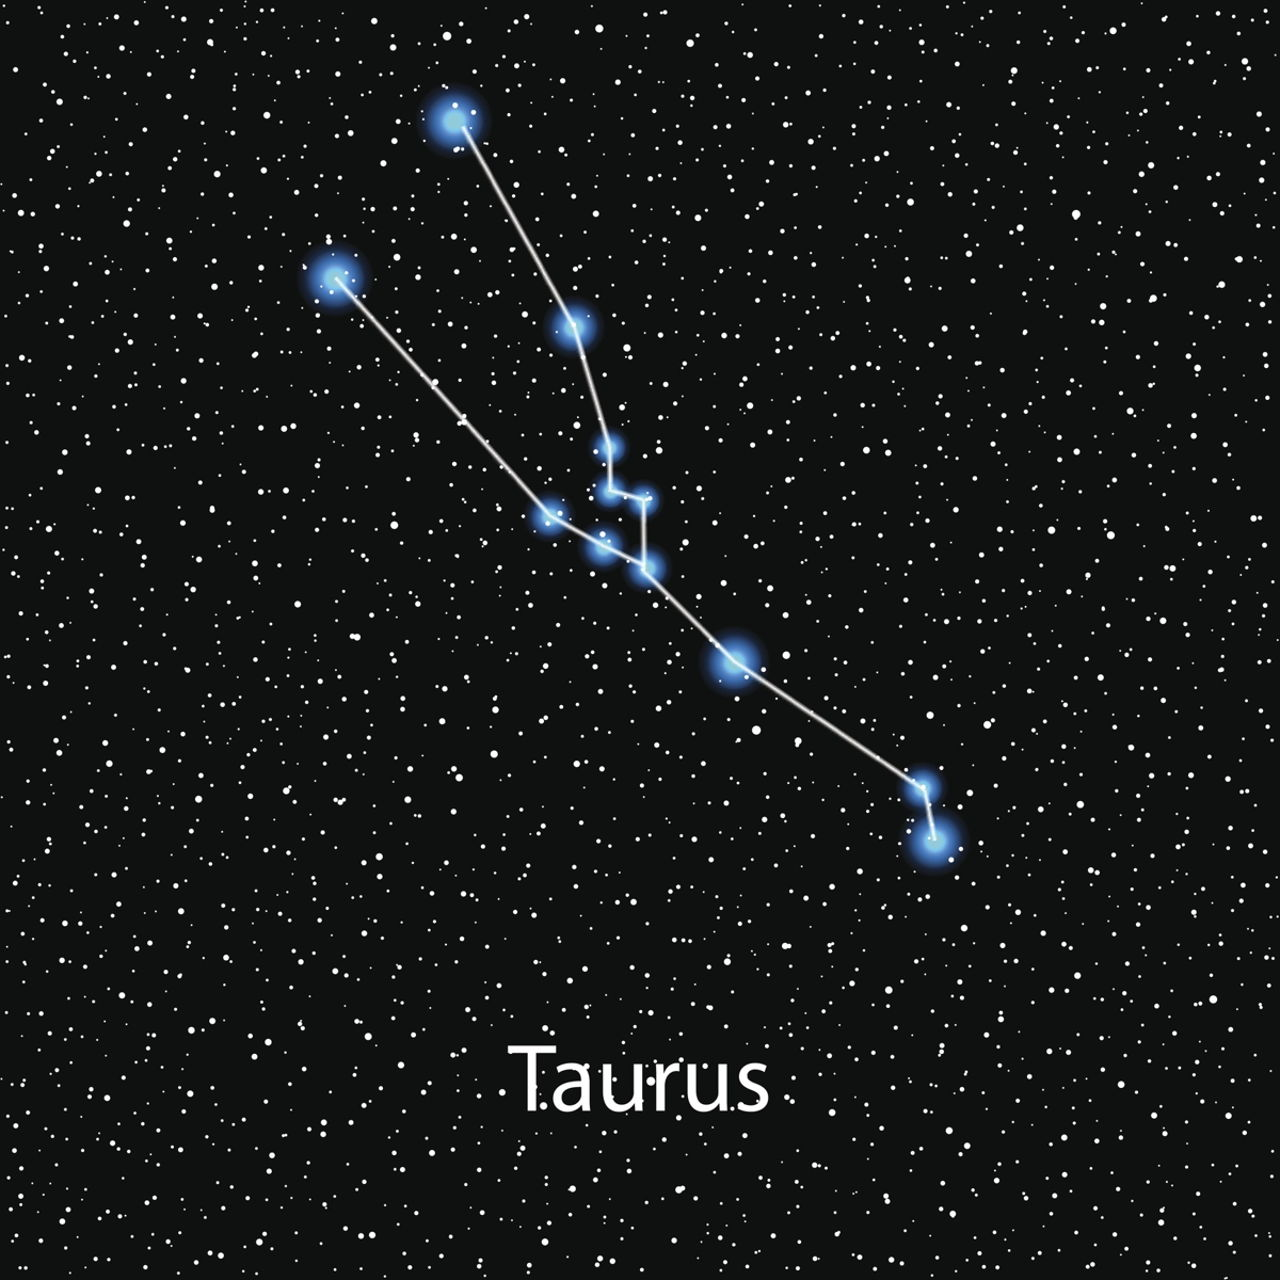 Astrology sign, Taurus, is highlighted in the May HoroScoops.